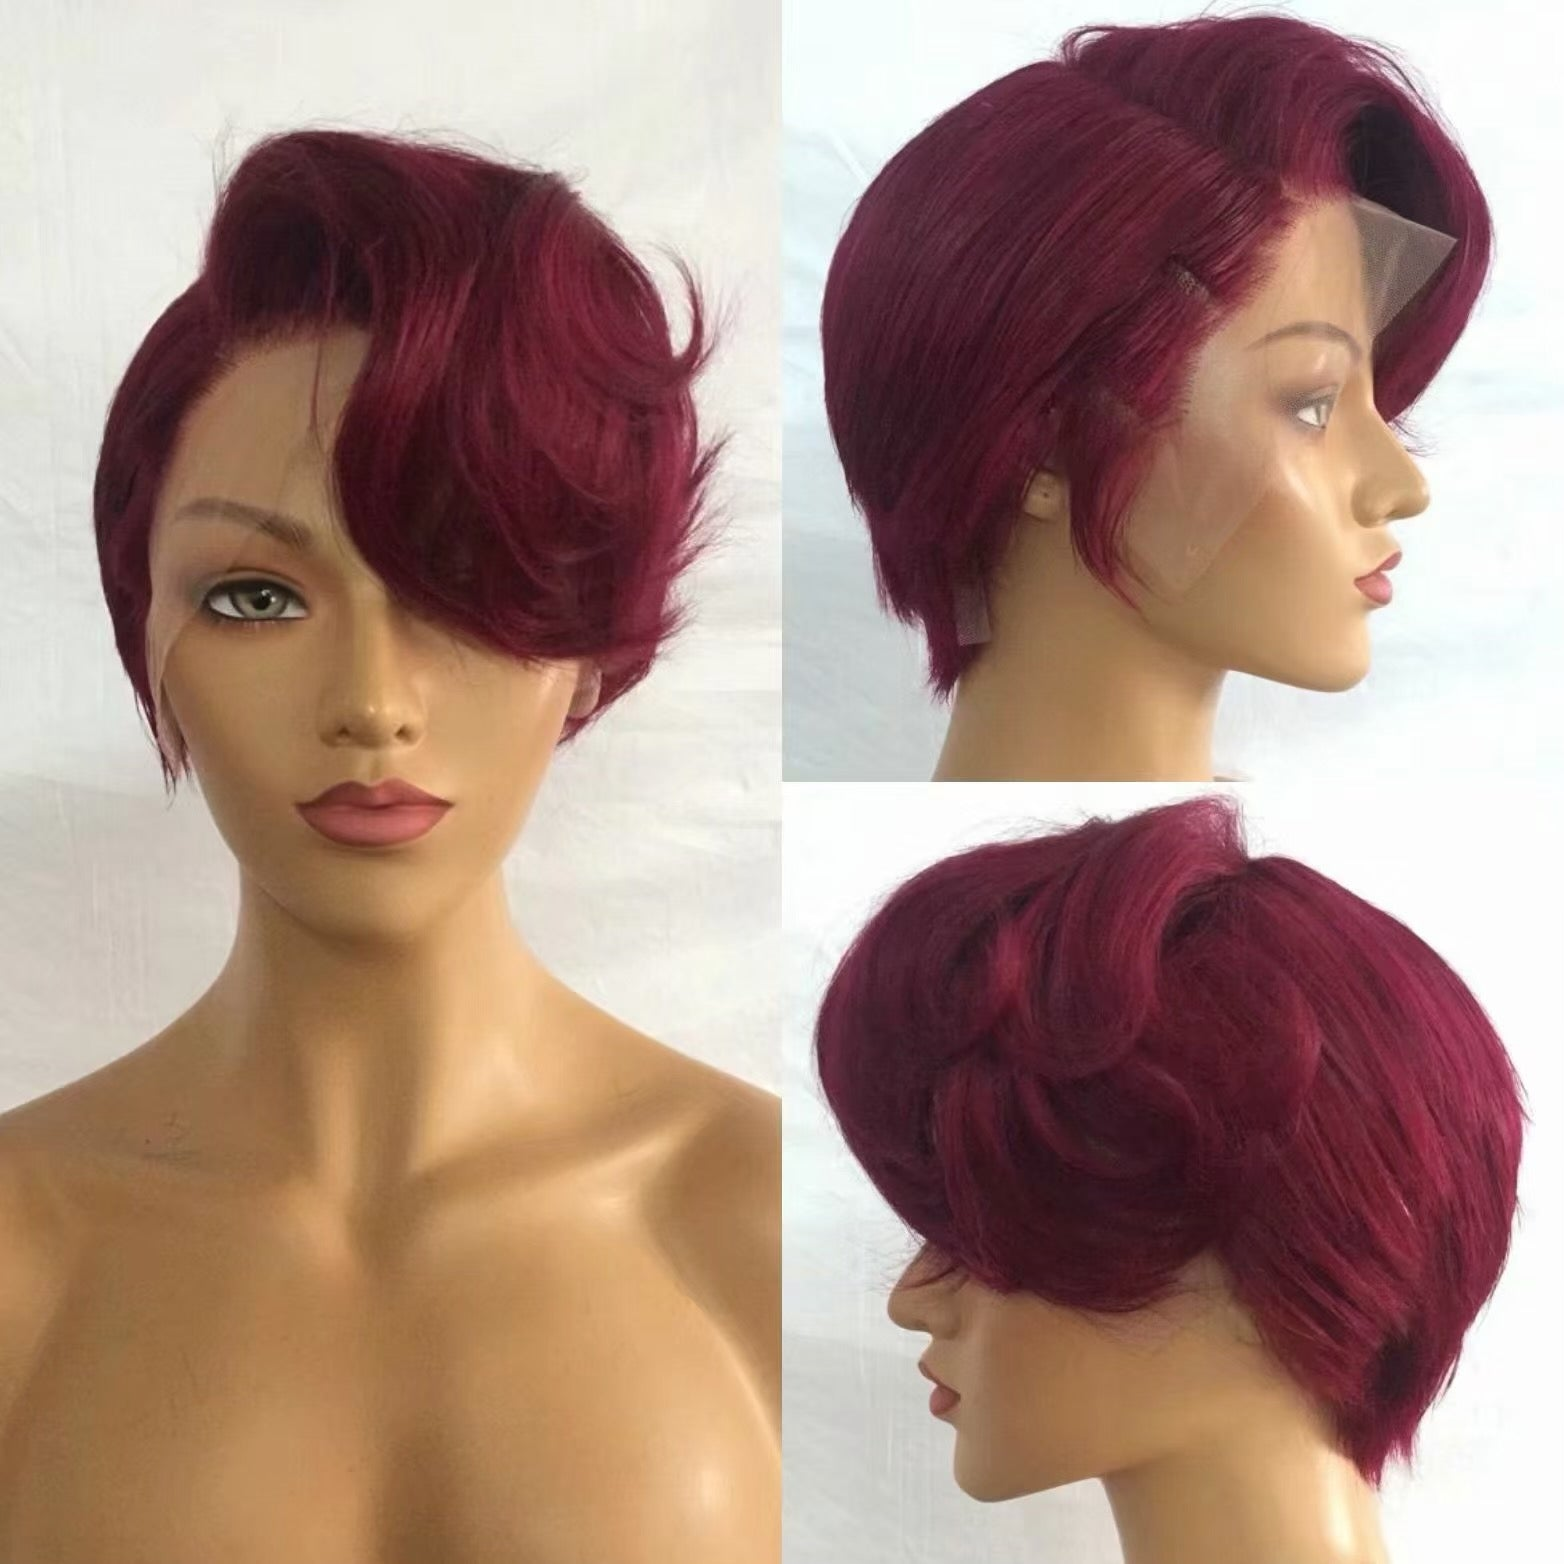 short red pixie cut wig human hair for black women